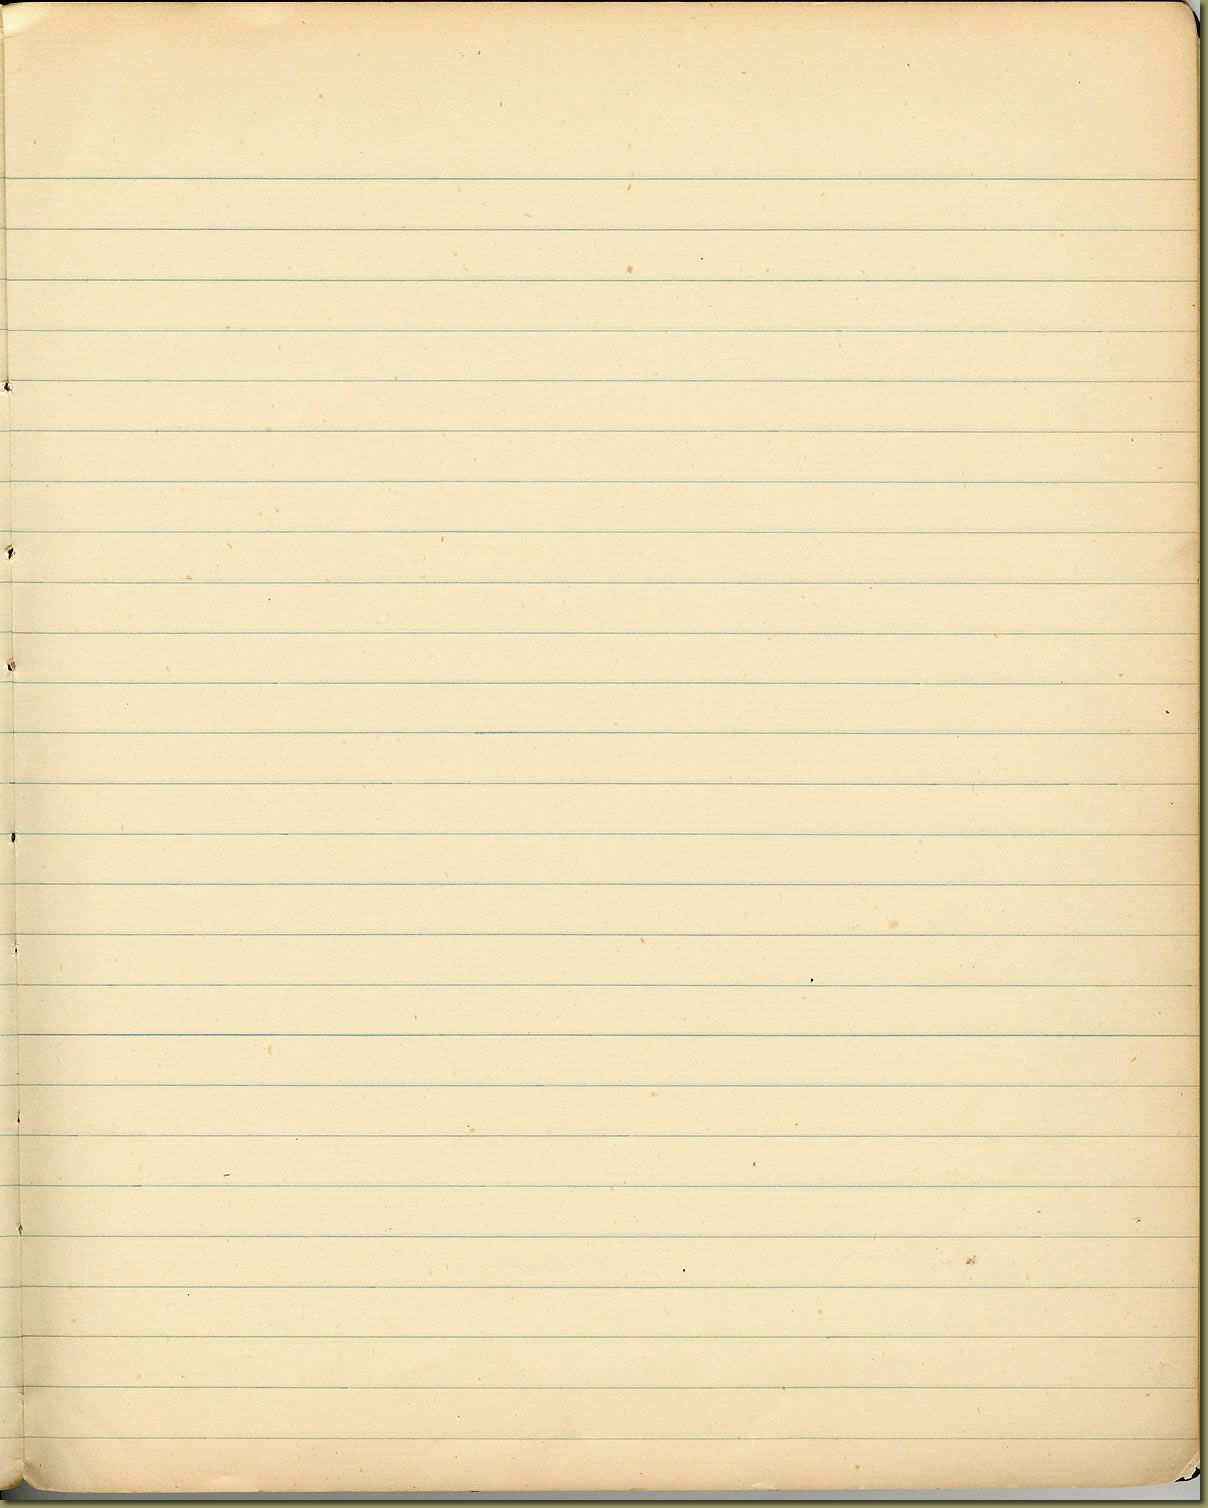 blank page for typing